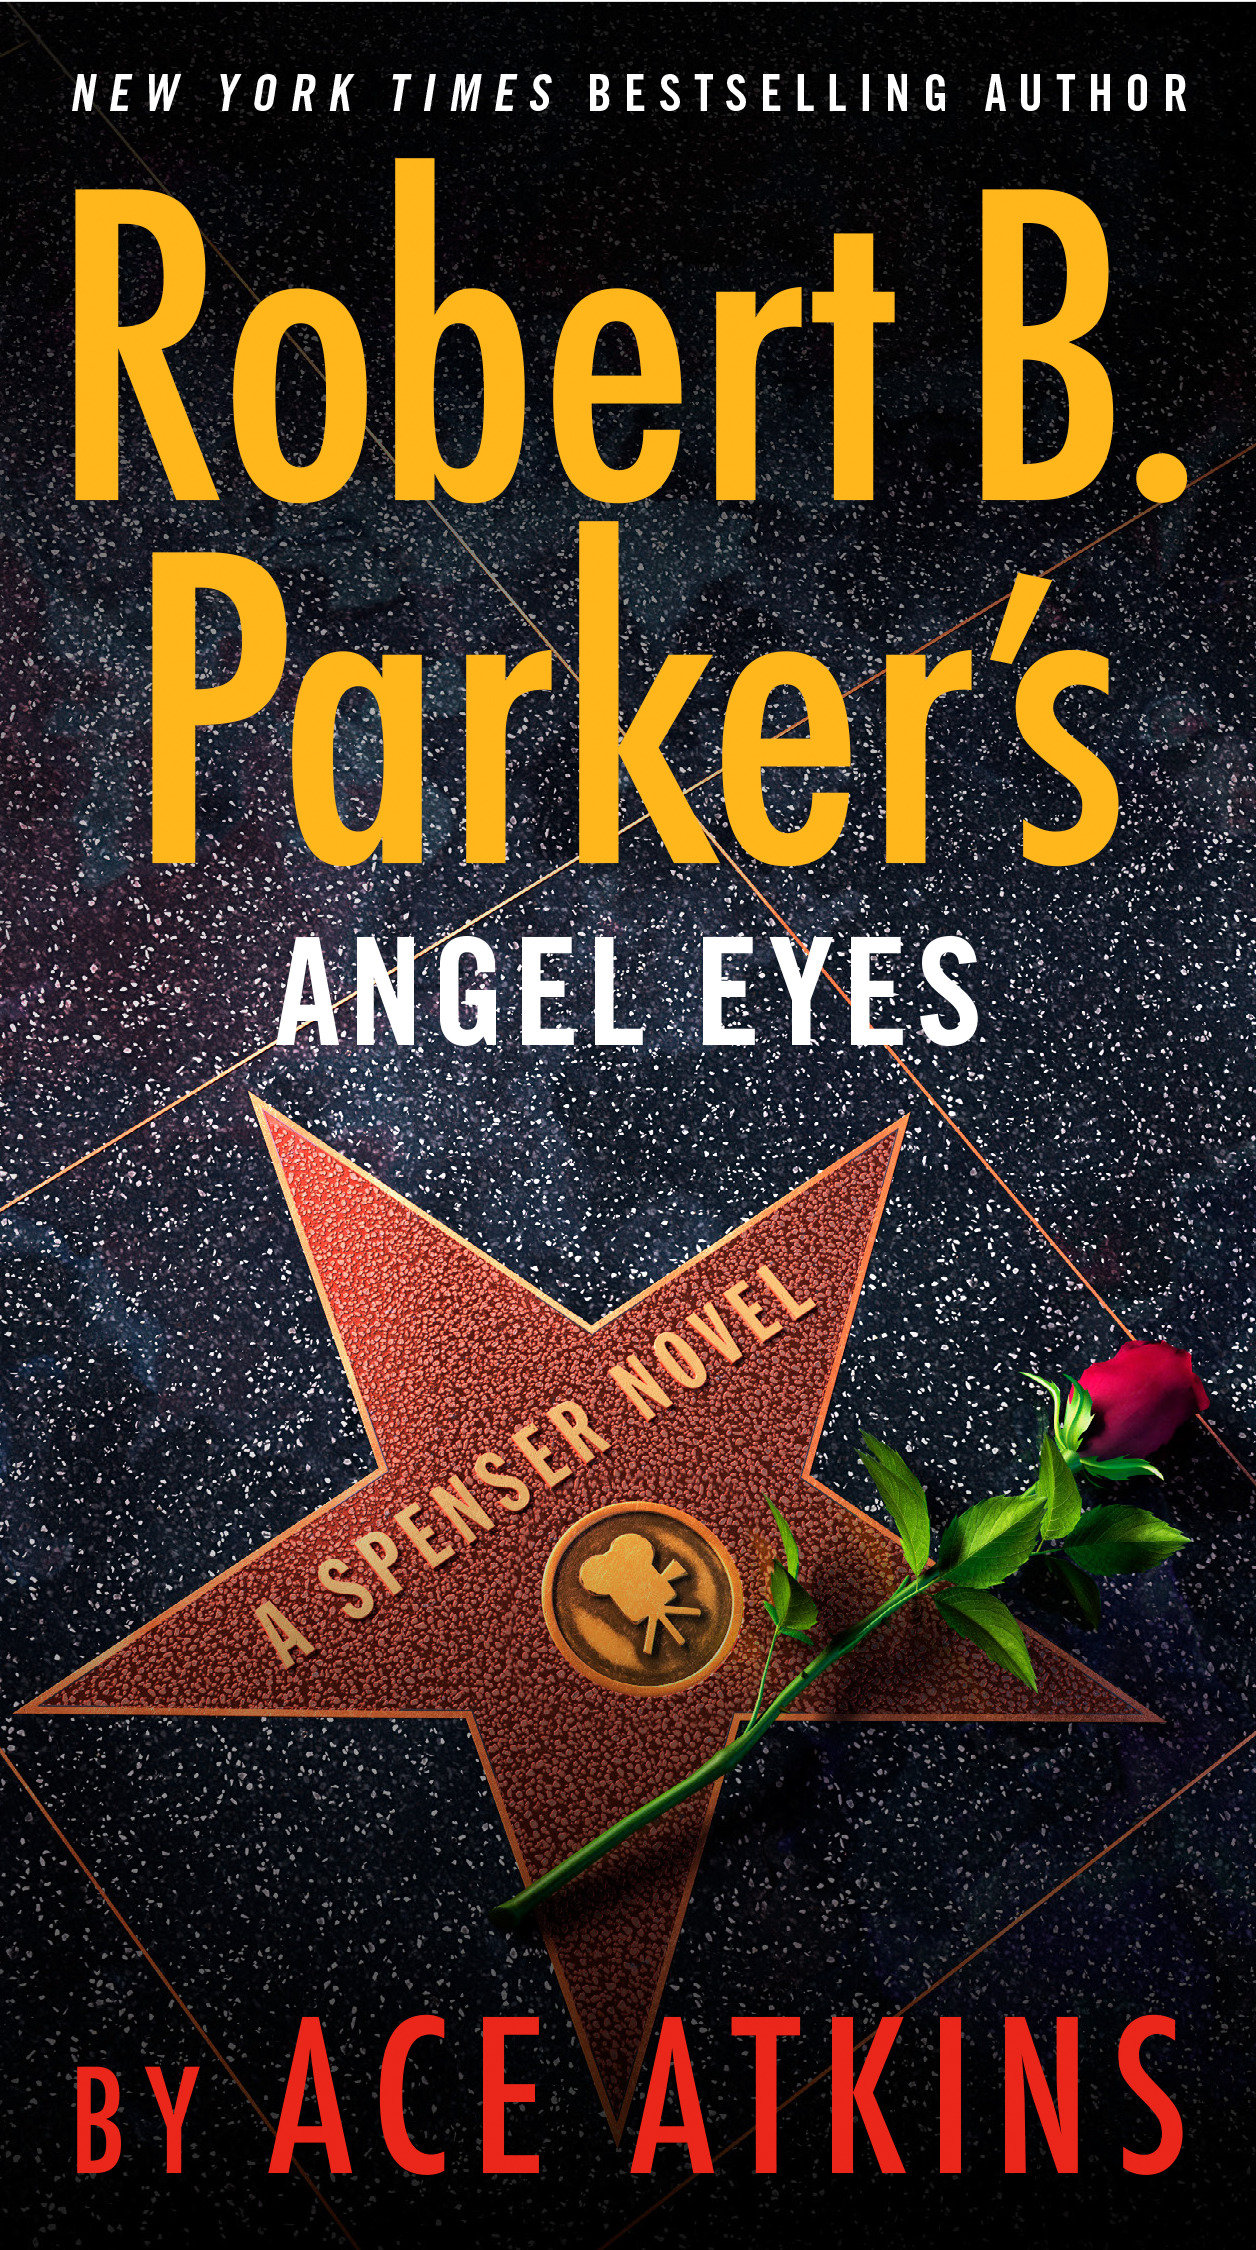 Robert B. Parker's angel eyes cover image